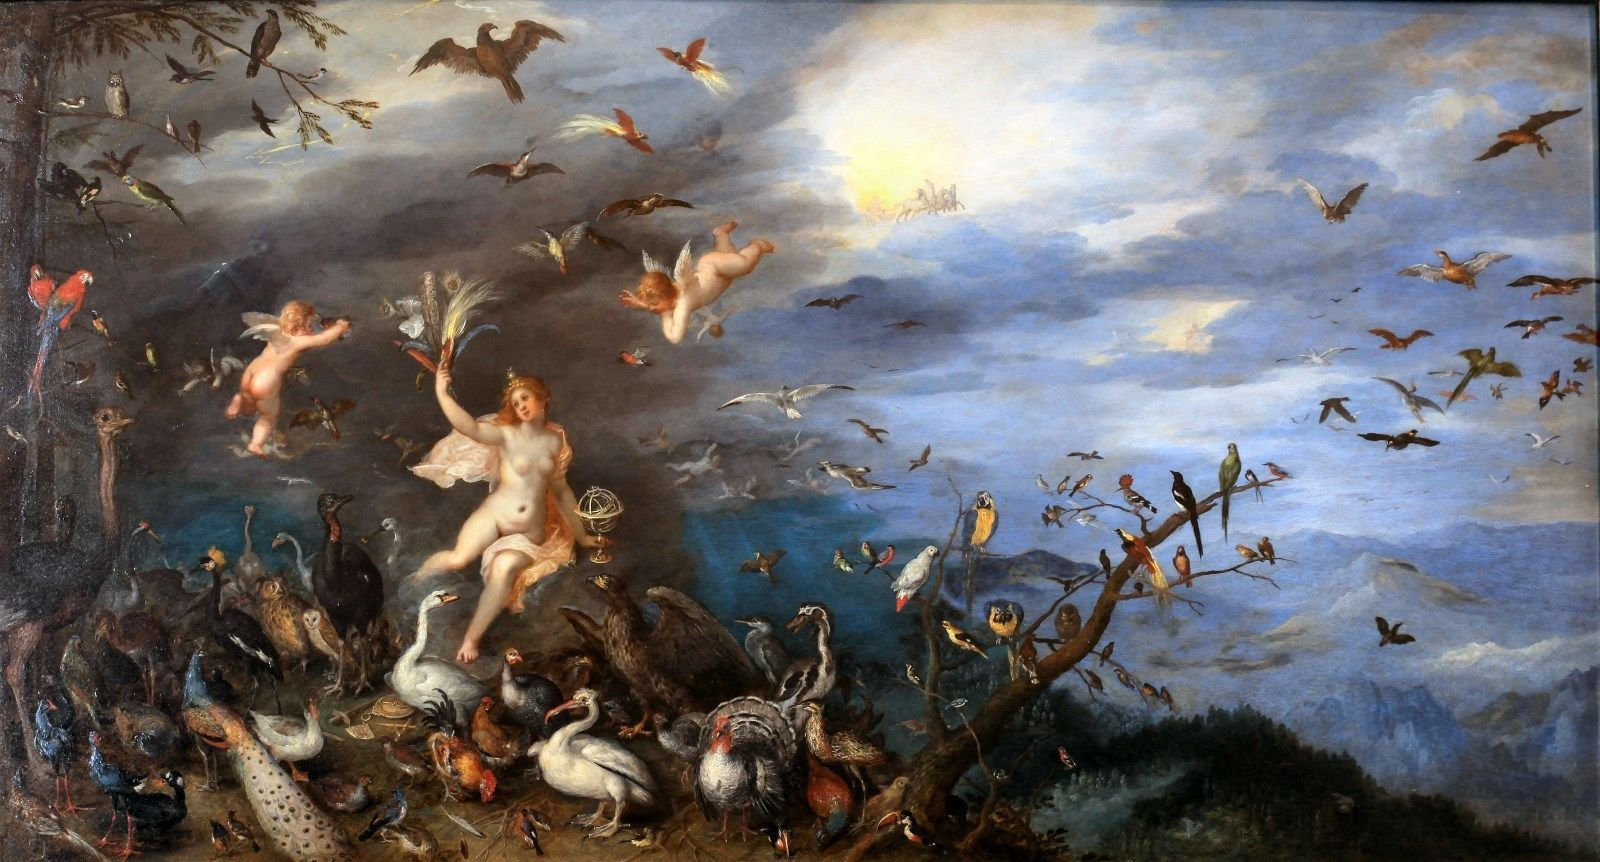 an analysis of the landscape with ceres allegory of earth Landscape with ceres allegory of earth1630 throw pillow by jan brueghel our throw pillows are made from 100% spun polyester poplin fabric and add a stylish statement to any room pillows are available in sizes from 14 x 14 up to 26 x 26.